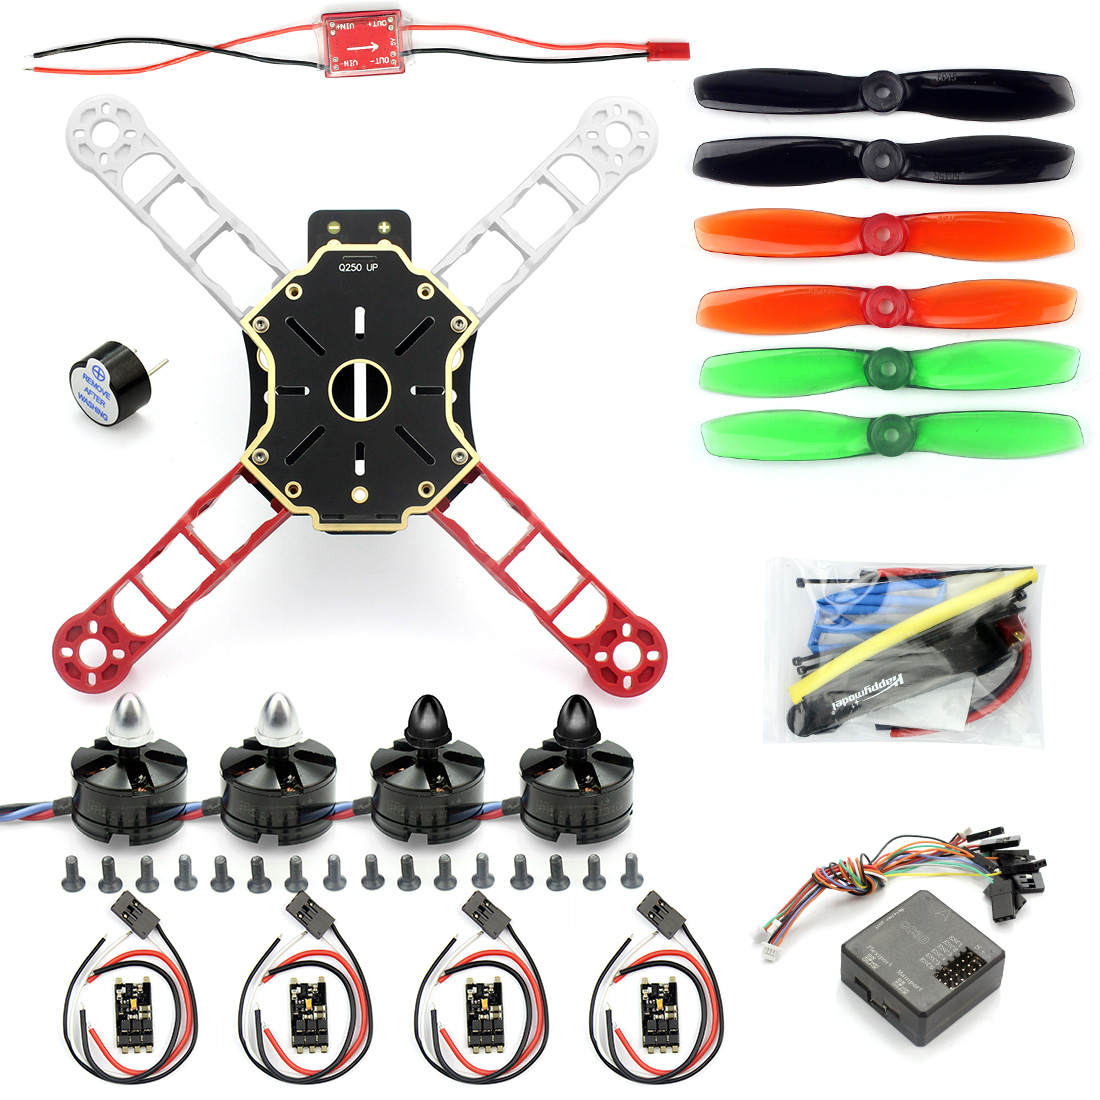 F11069 Mini 250 RC Quadcopter Combo ARF Q250 Frame CC3D Flight Controller Emax Simon 12A ESC Brushless Motor MT2204 CW CCW FS